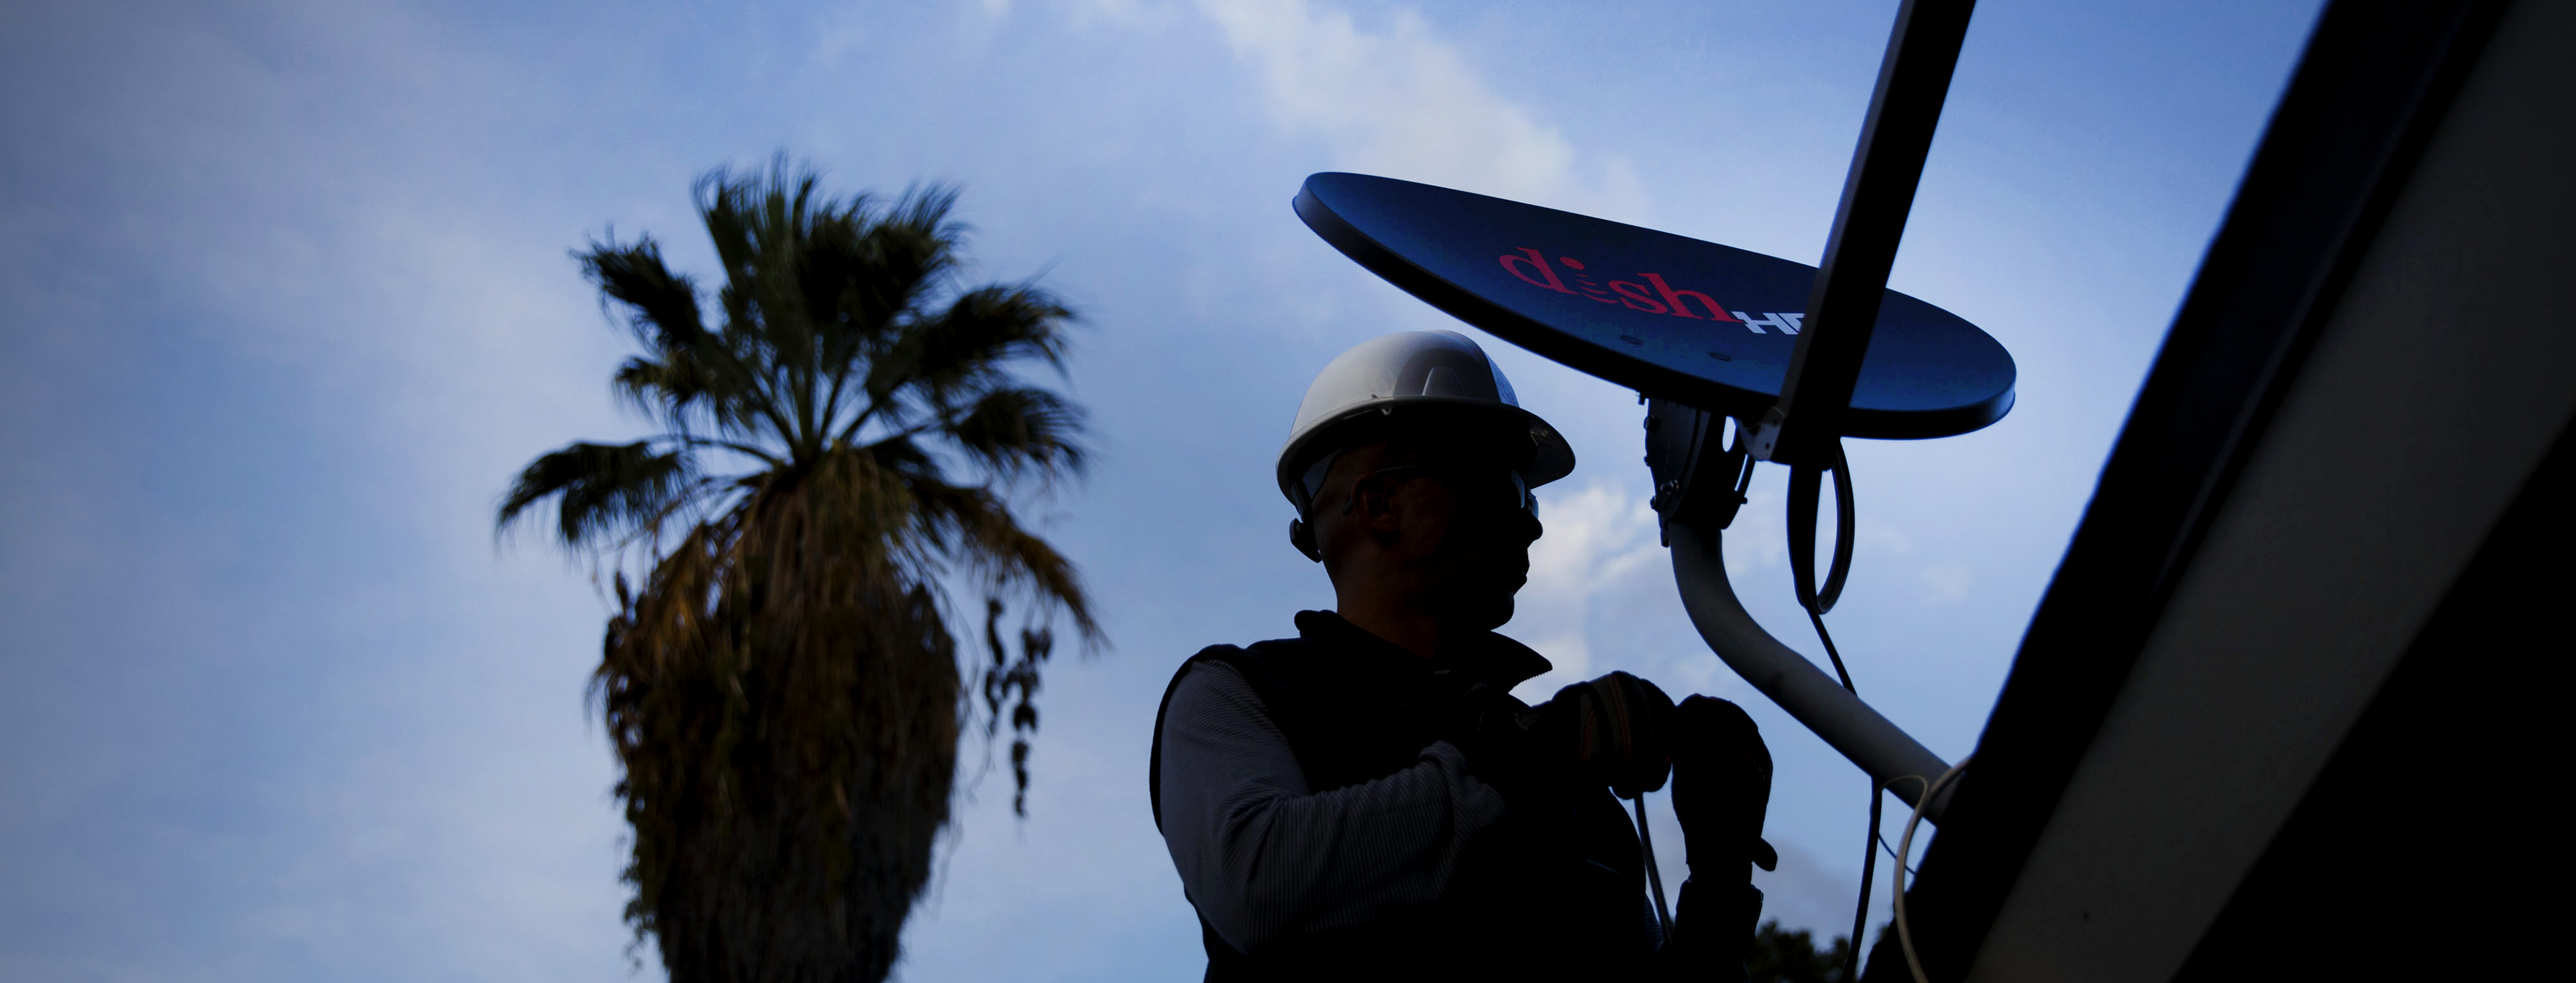 A Dish Network Corp. Ride-Along Ahead Of Earnings Figures